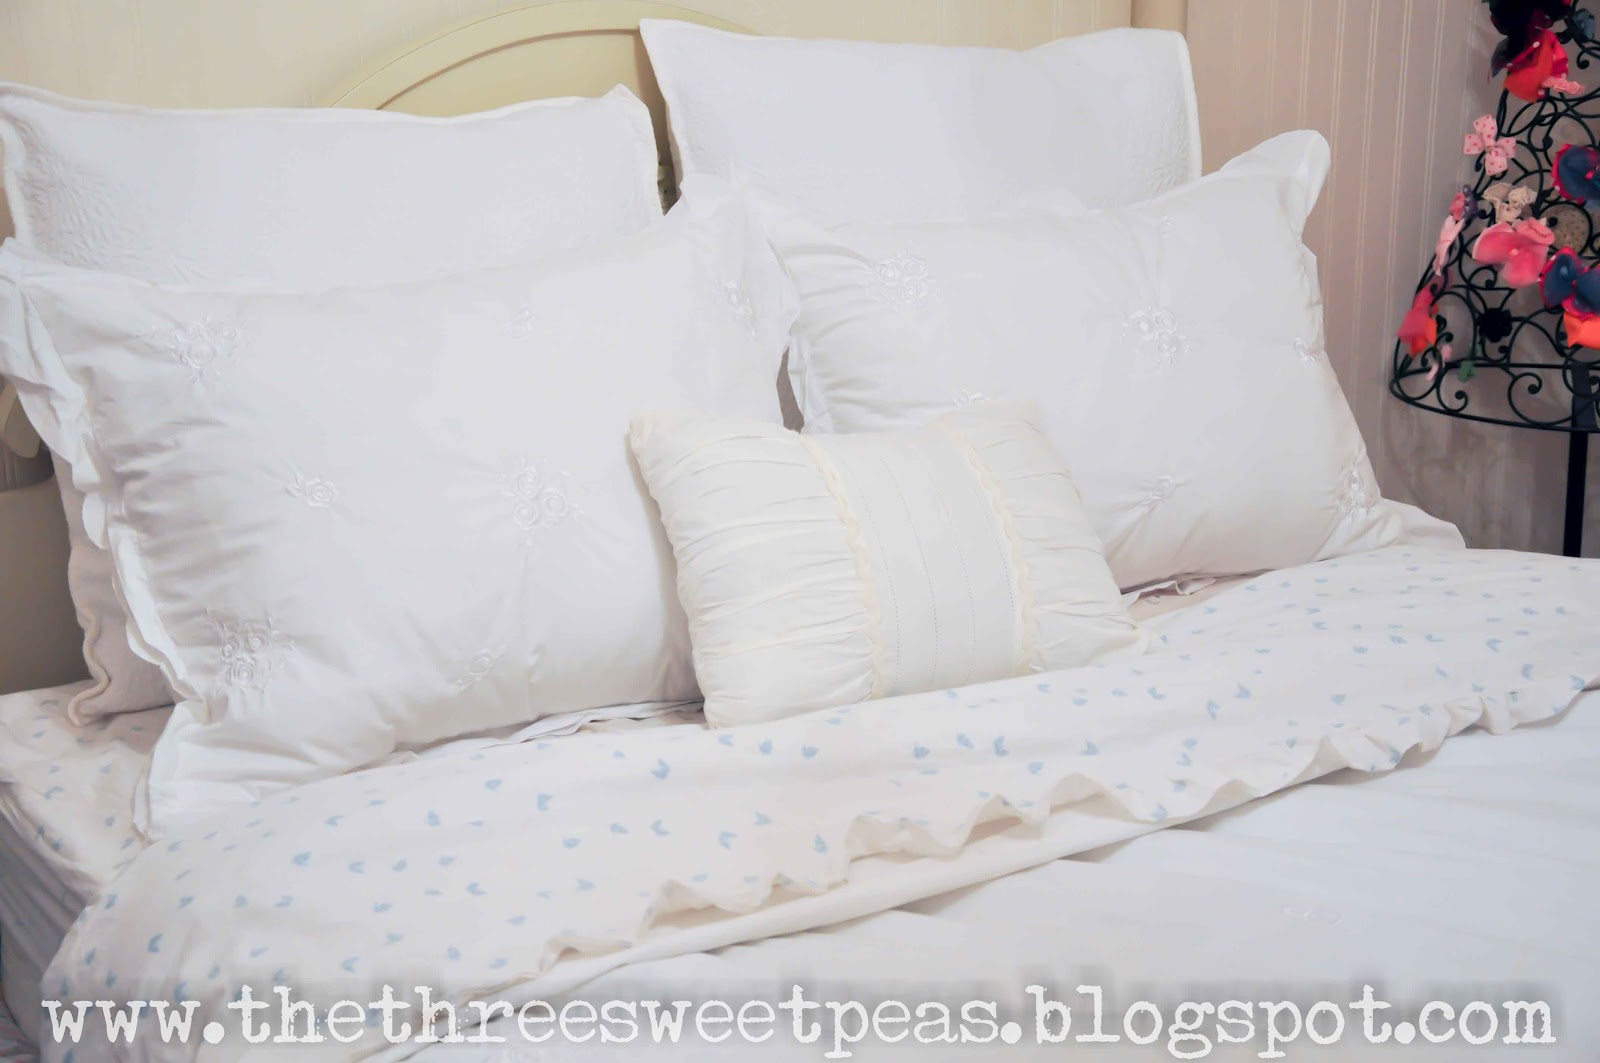 .99 Ikea Pillow Hack!! (decorating idea) : ideas for pillows on bed  - pillowsntoast.com